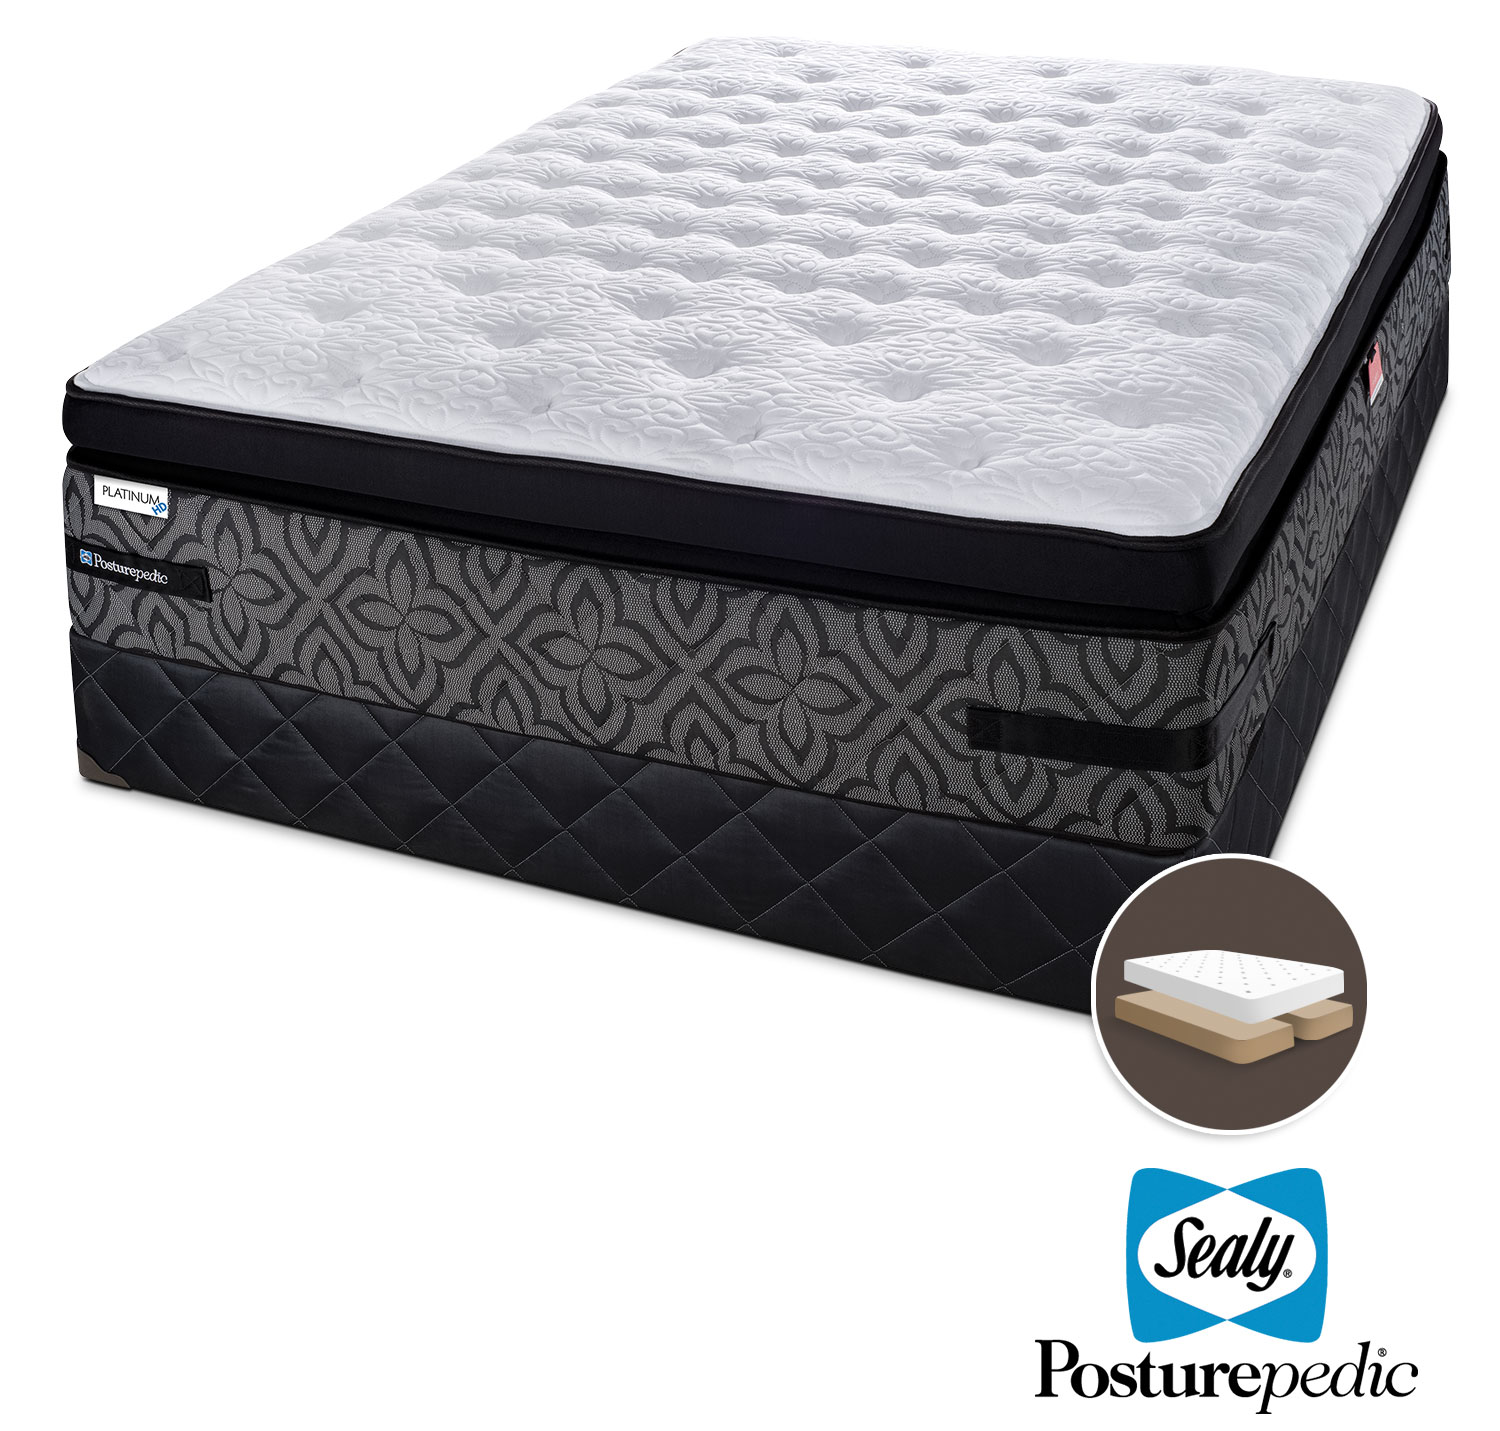 Sealy Posturepedic 3 K Cushion Firm King Mattress and Split Boxspring Set